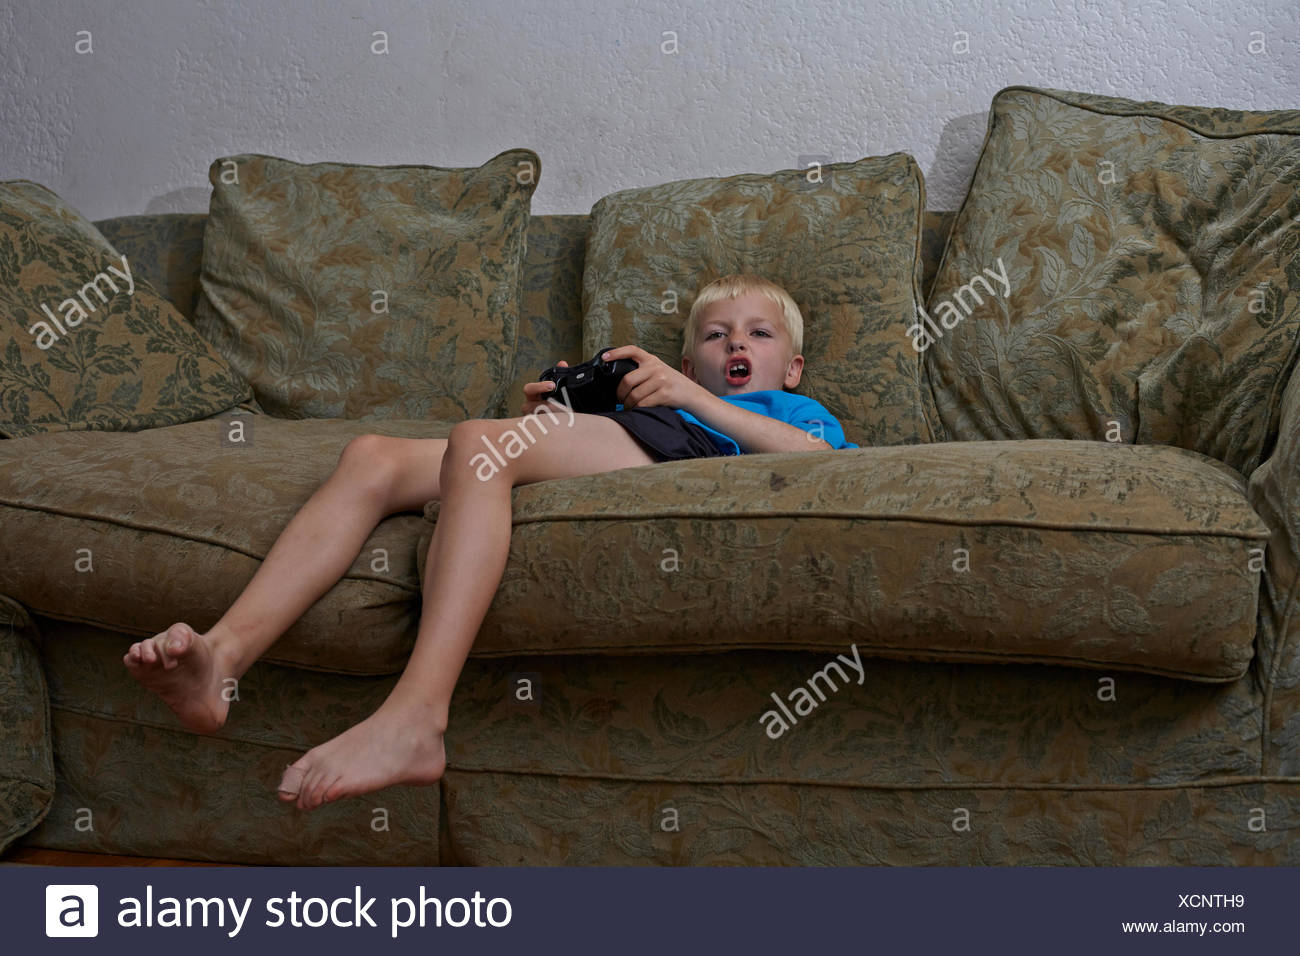 Boy playing video game in living room Banque D'Images